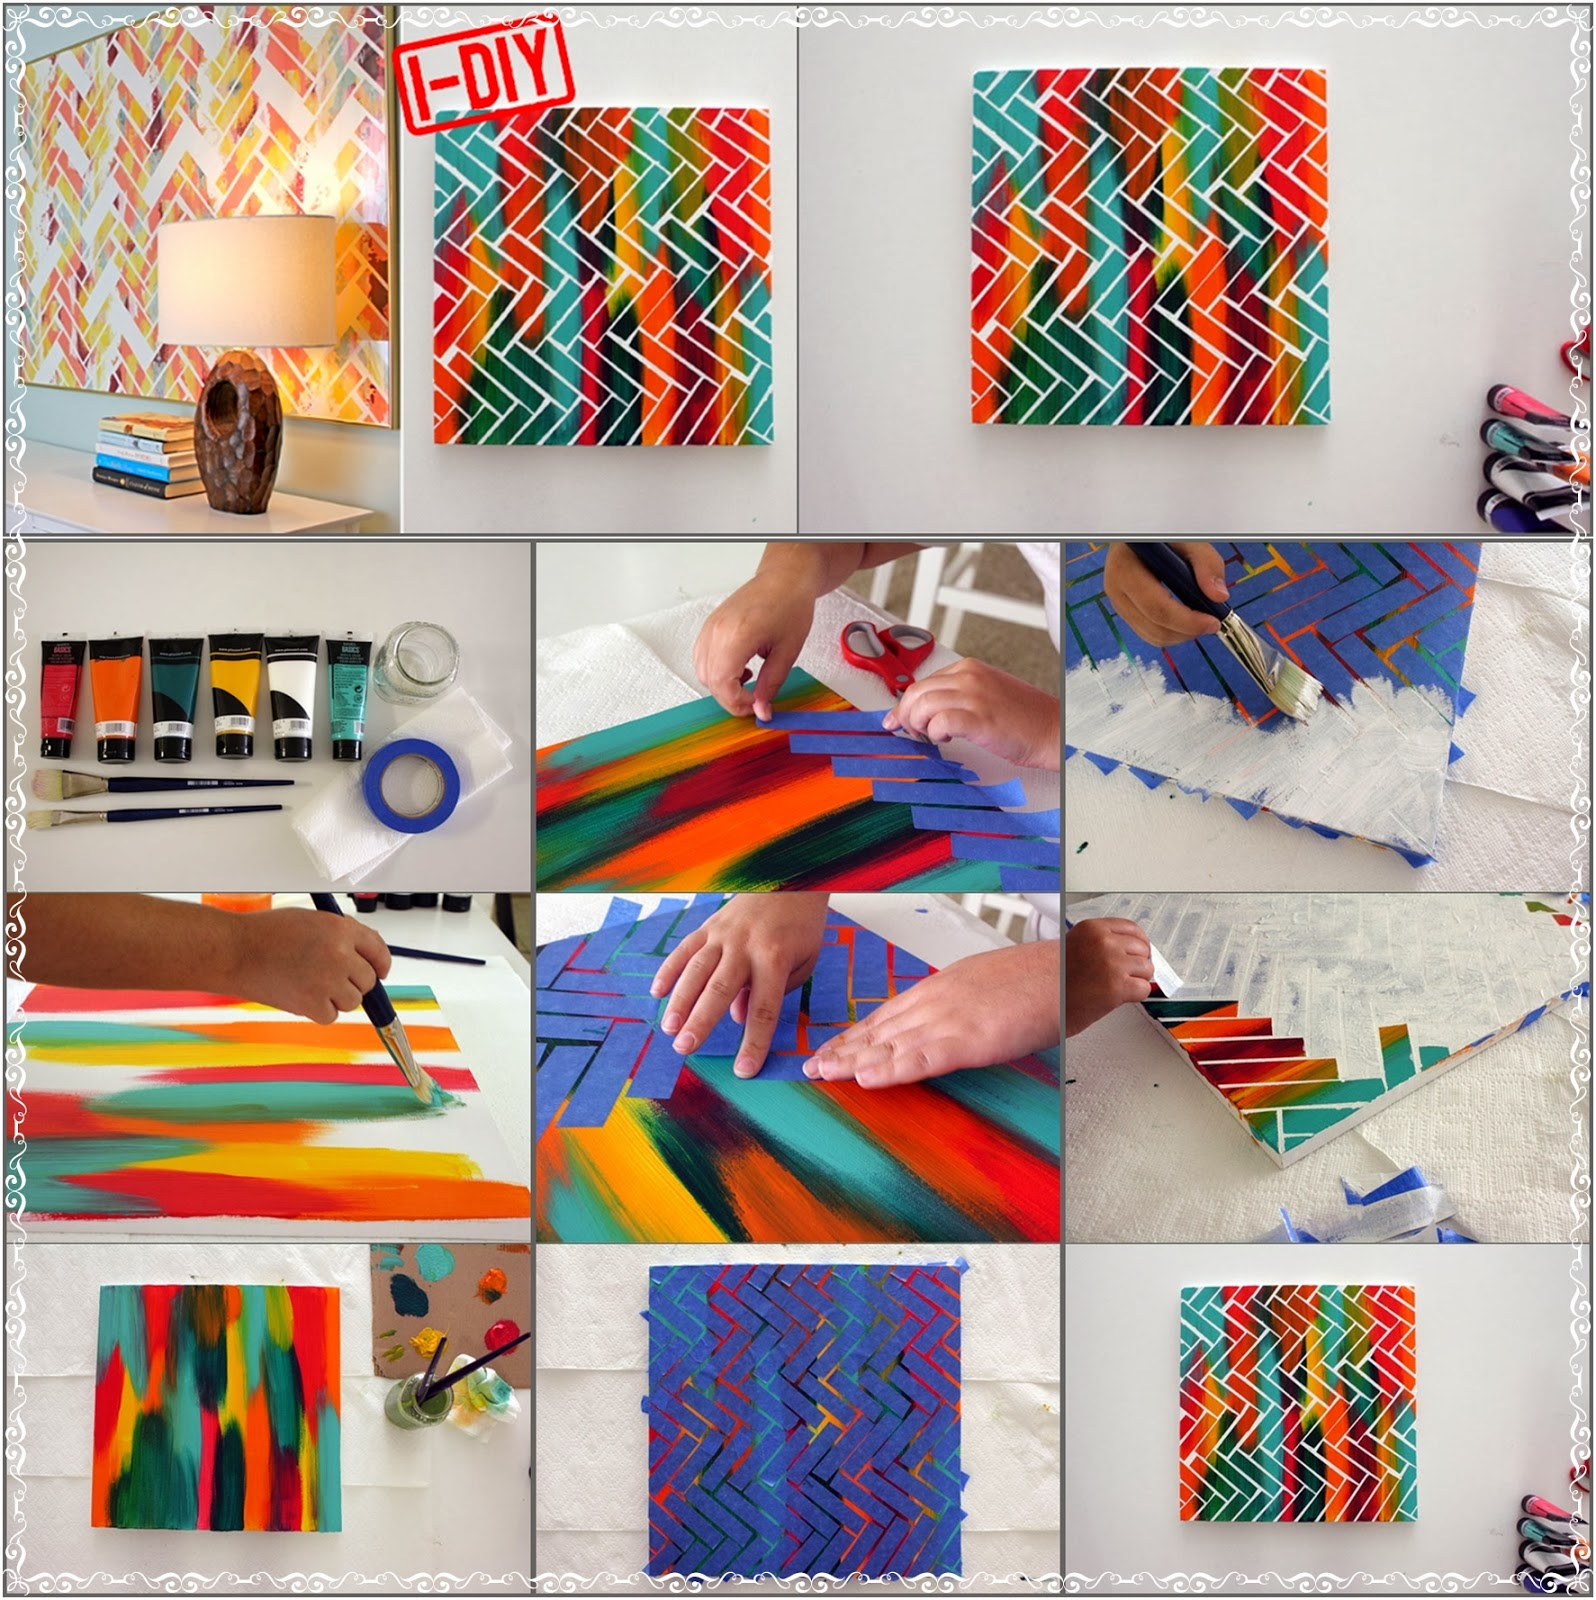 Diy herringbone painting art diy craft projects - Como pintar cuadros faciles ...